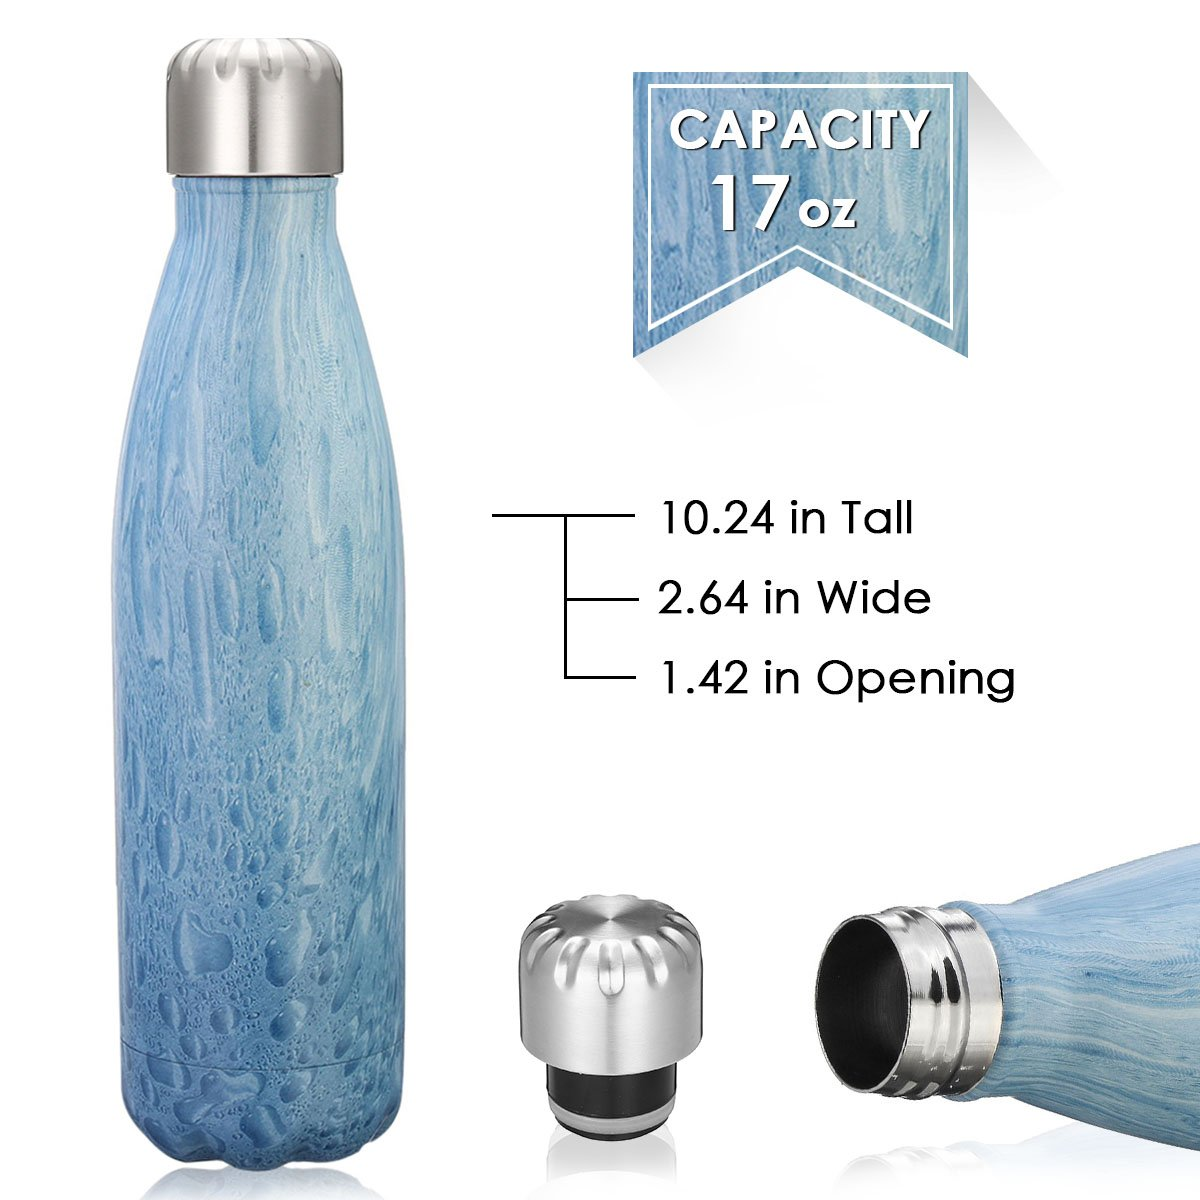 king do way Insulated Stainless Steel Water Vacuum Bottle Double-walled for Outdoor Sports Hiking Running, 500ml/17 oz